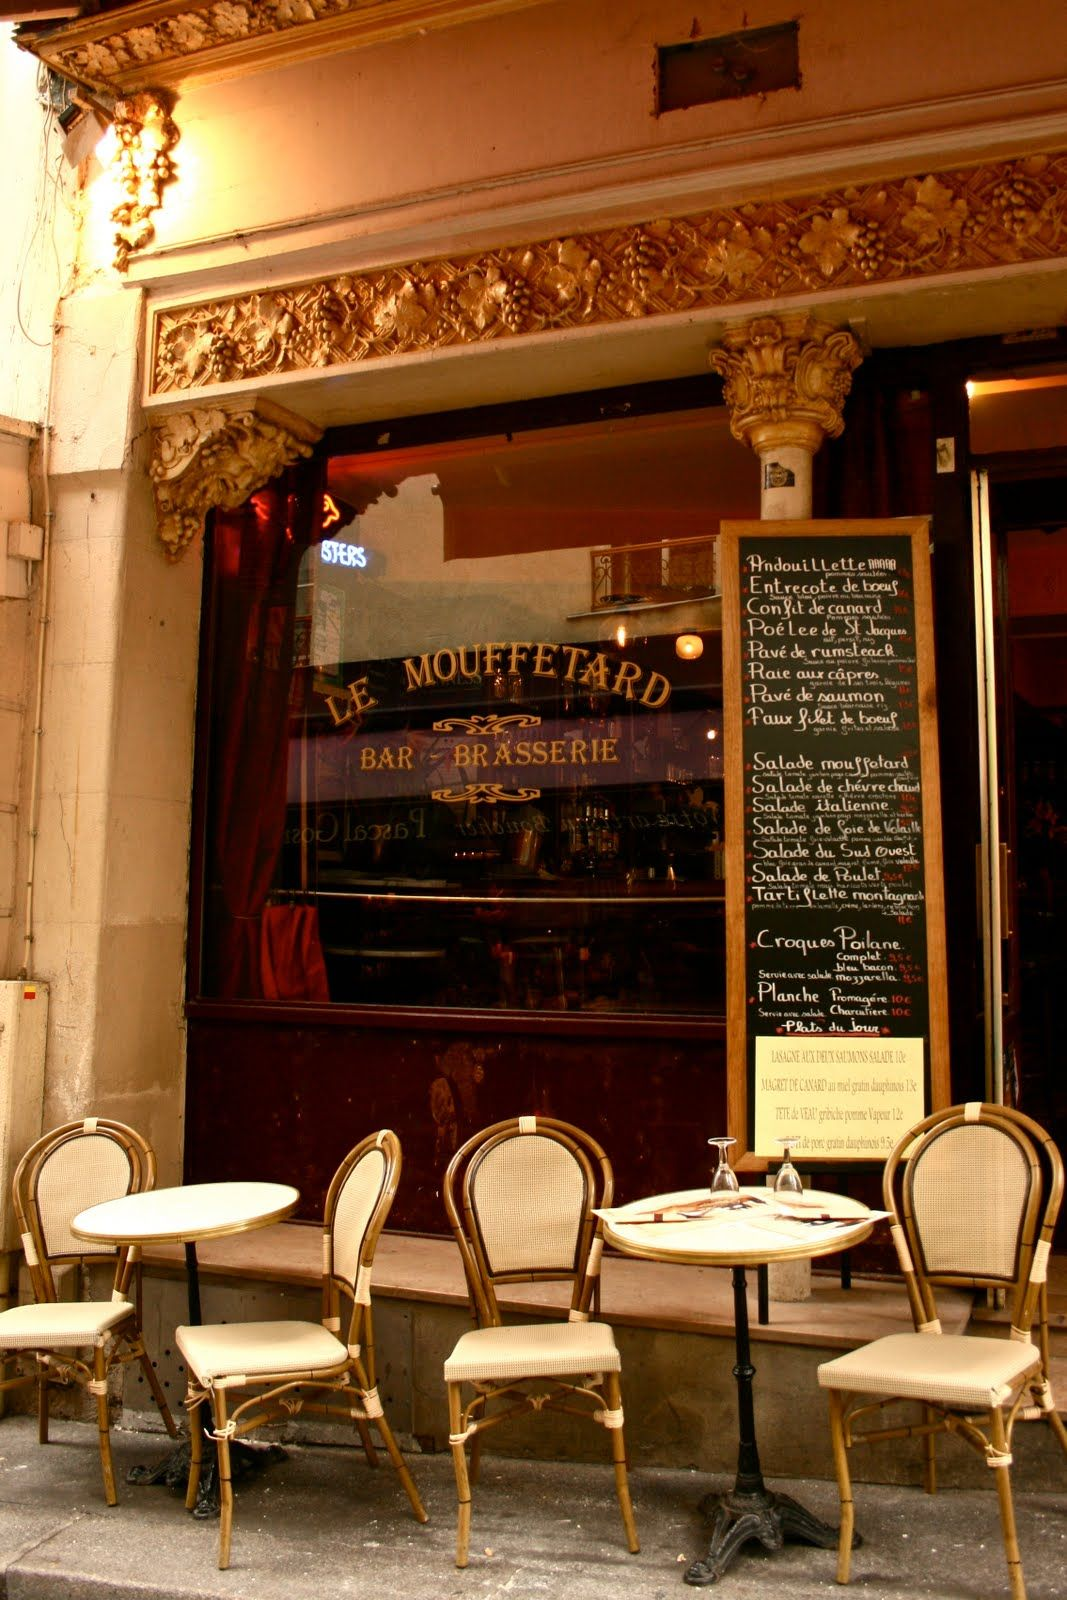 Le Mouffetard via: Paris Through My Lens: Paris cafes | Paris Street ...